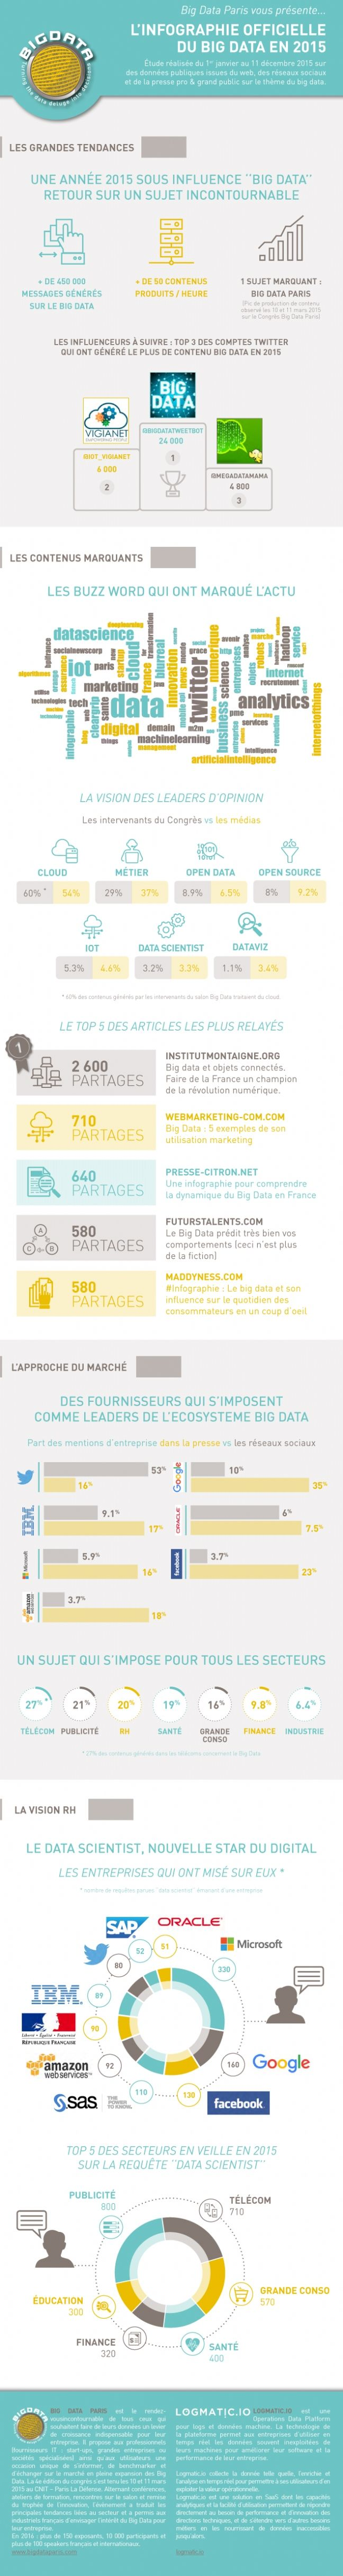 Infographie Big Data : le bilan 2015 (en chiffres)  http://www.e-marketing.fr/Thematique/etudes-1000/Infographies/Big-Data-bilan-2015-chiffres-300314.htm